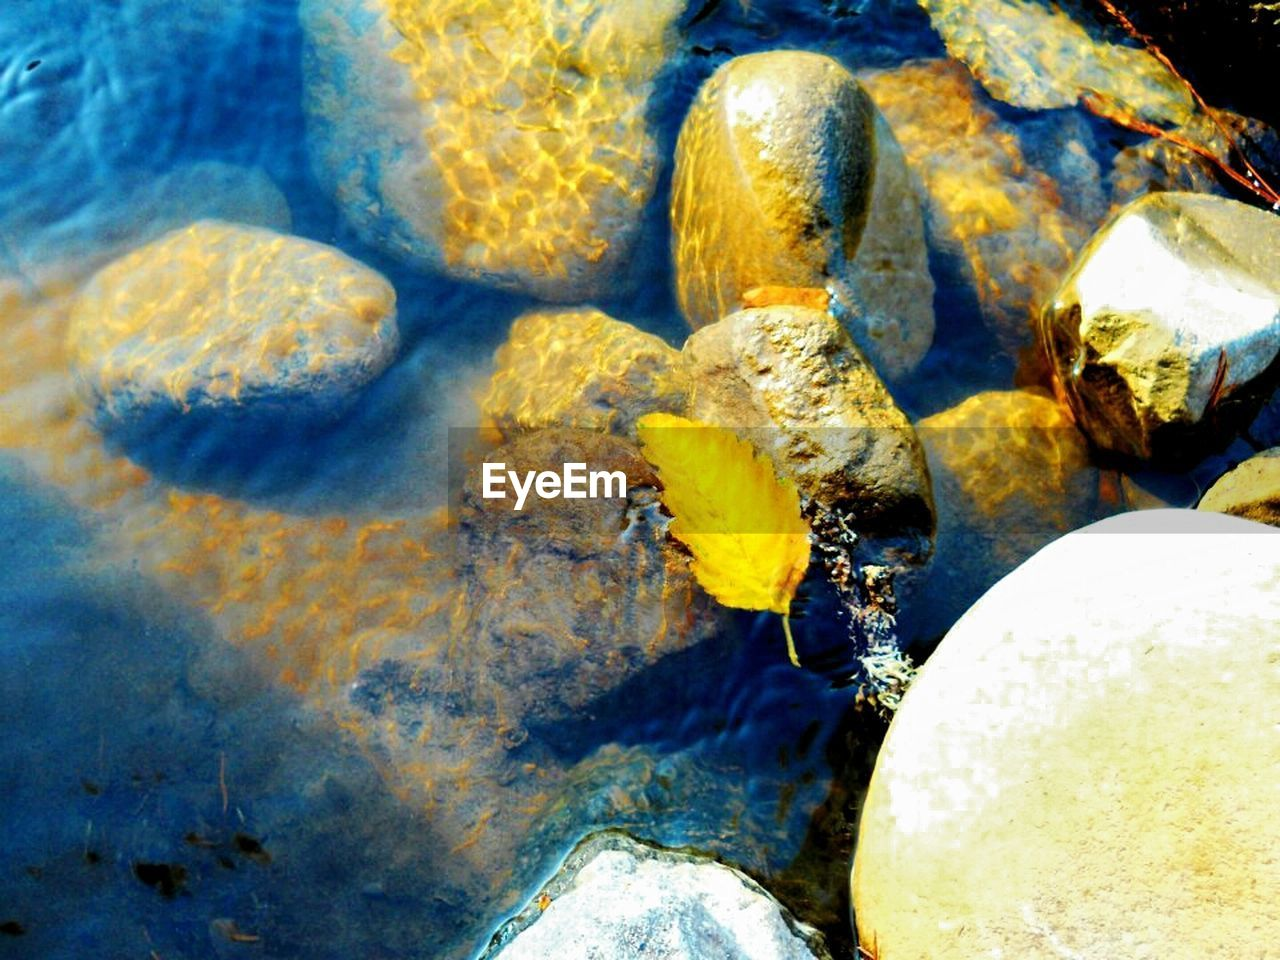 rock - object, water, no people, nature, close-up, outdoors, day, beauty in nature, sea